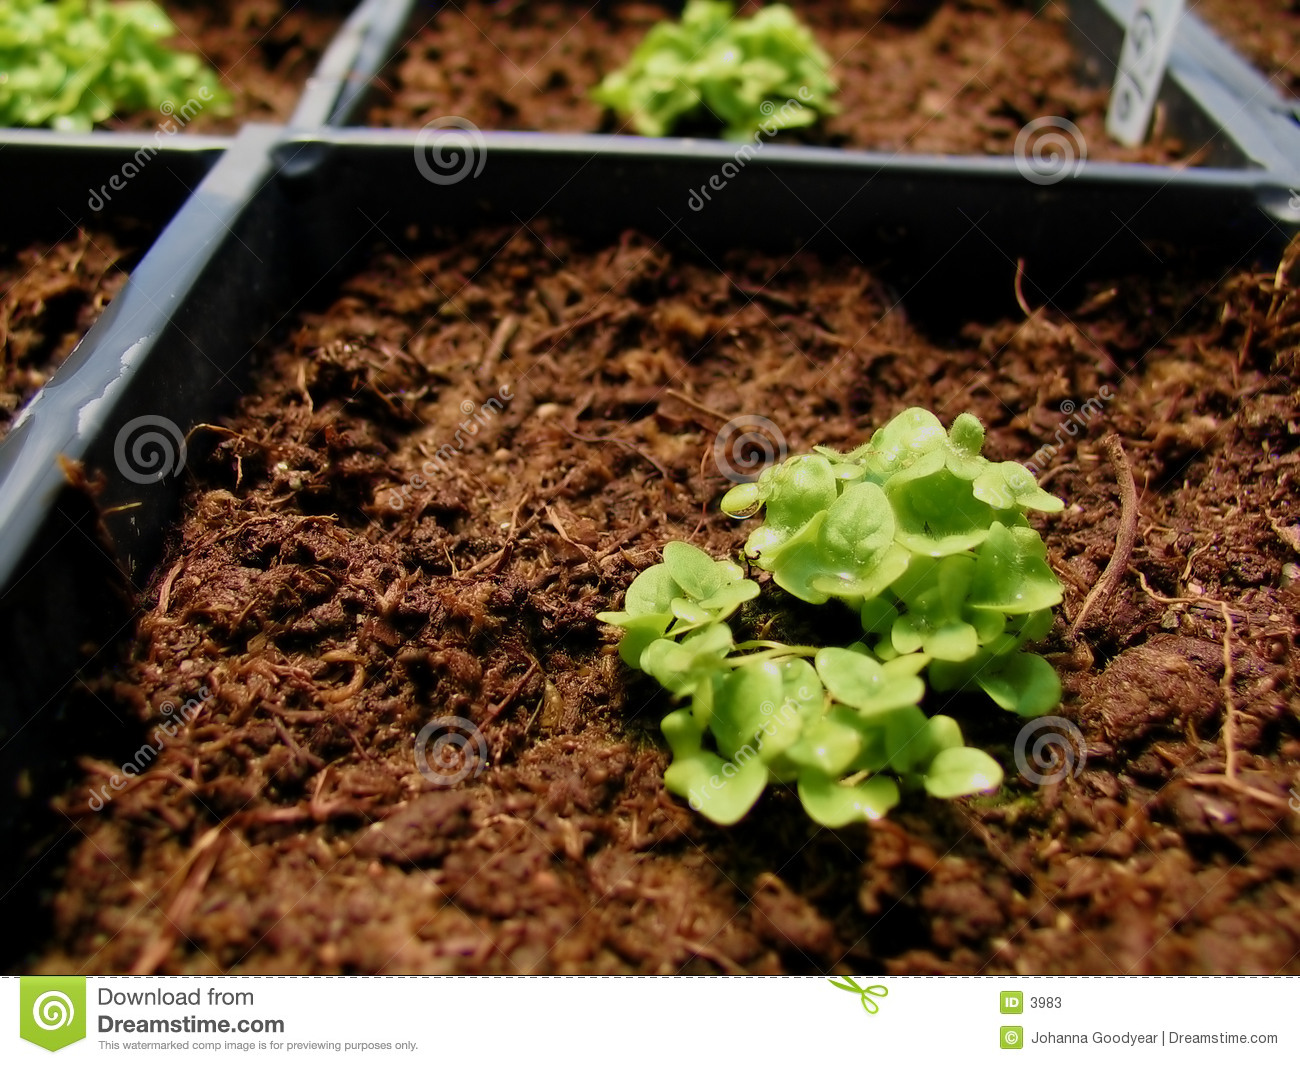 Download Plant in Greenhouse stock image. Image of planting, grow - 3983